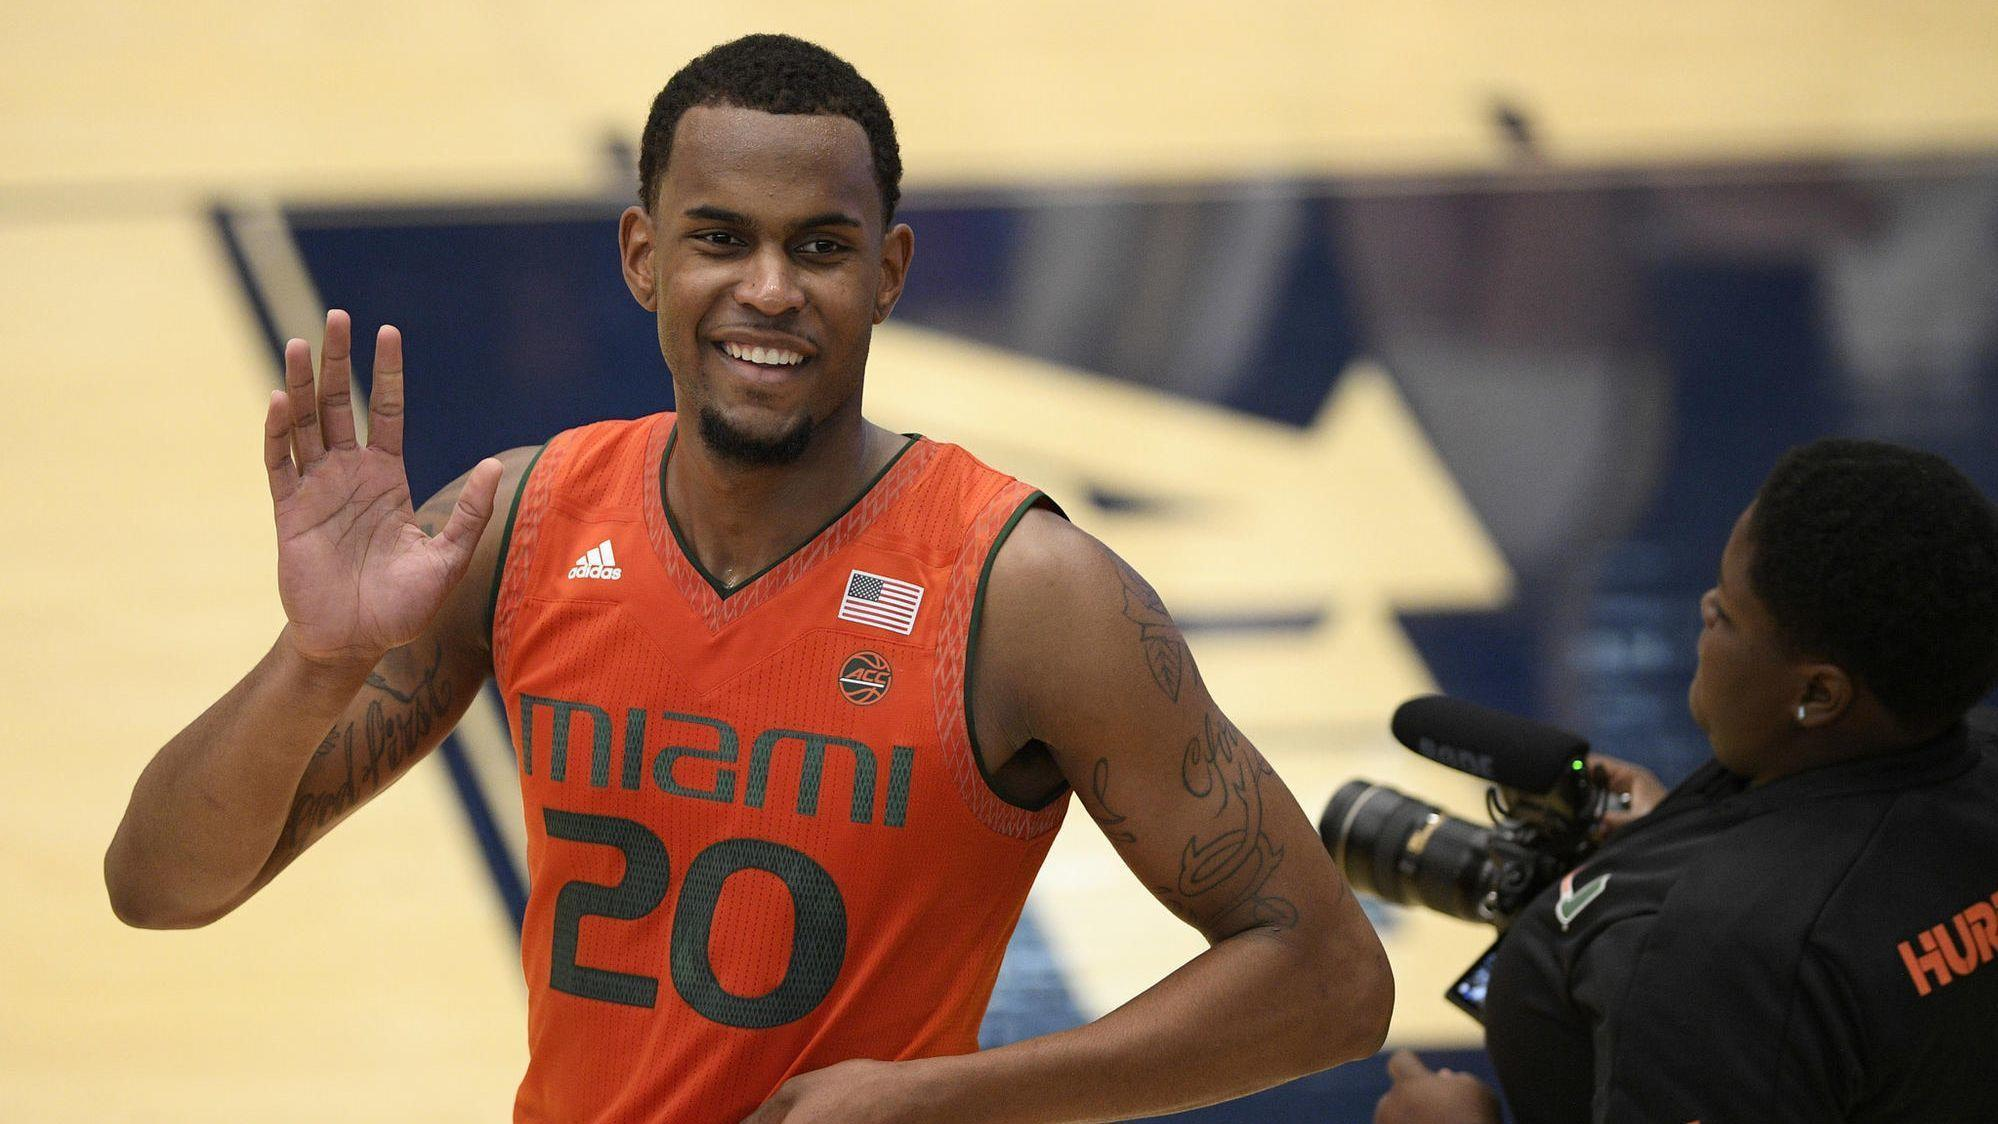 Fl-sp-um-hurricanes-dewan-huell-return-miami-nba-draft-20180526